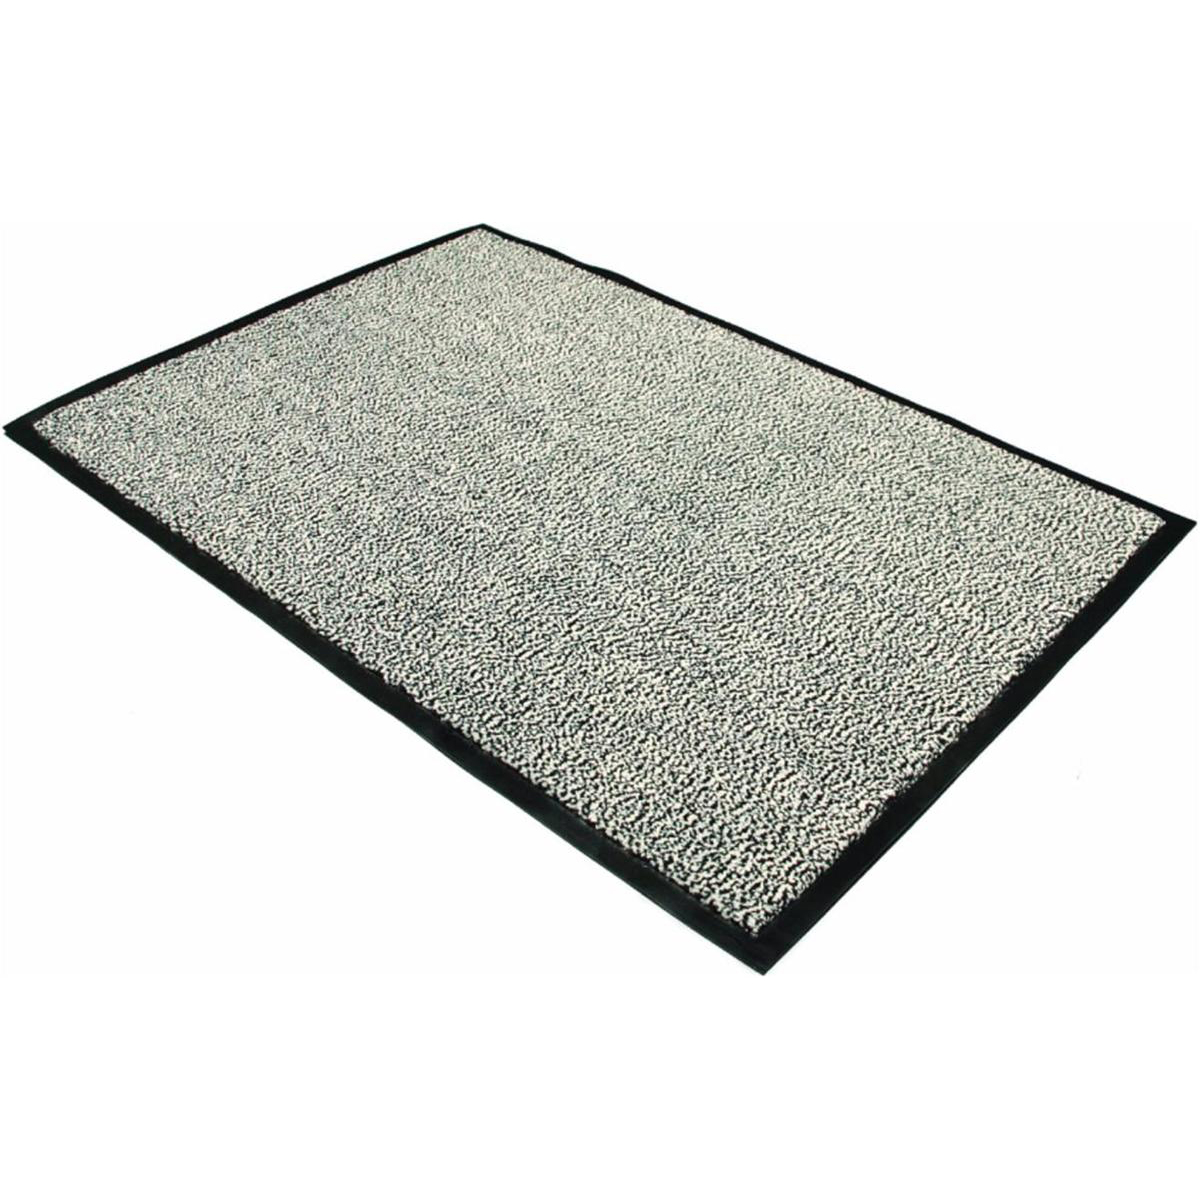 Indoor Doortex Advantagemat Door Mat Dust & Moisture Control Polypropylene 600x900mm Anthracite Ref FC46090DCBWV